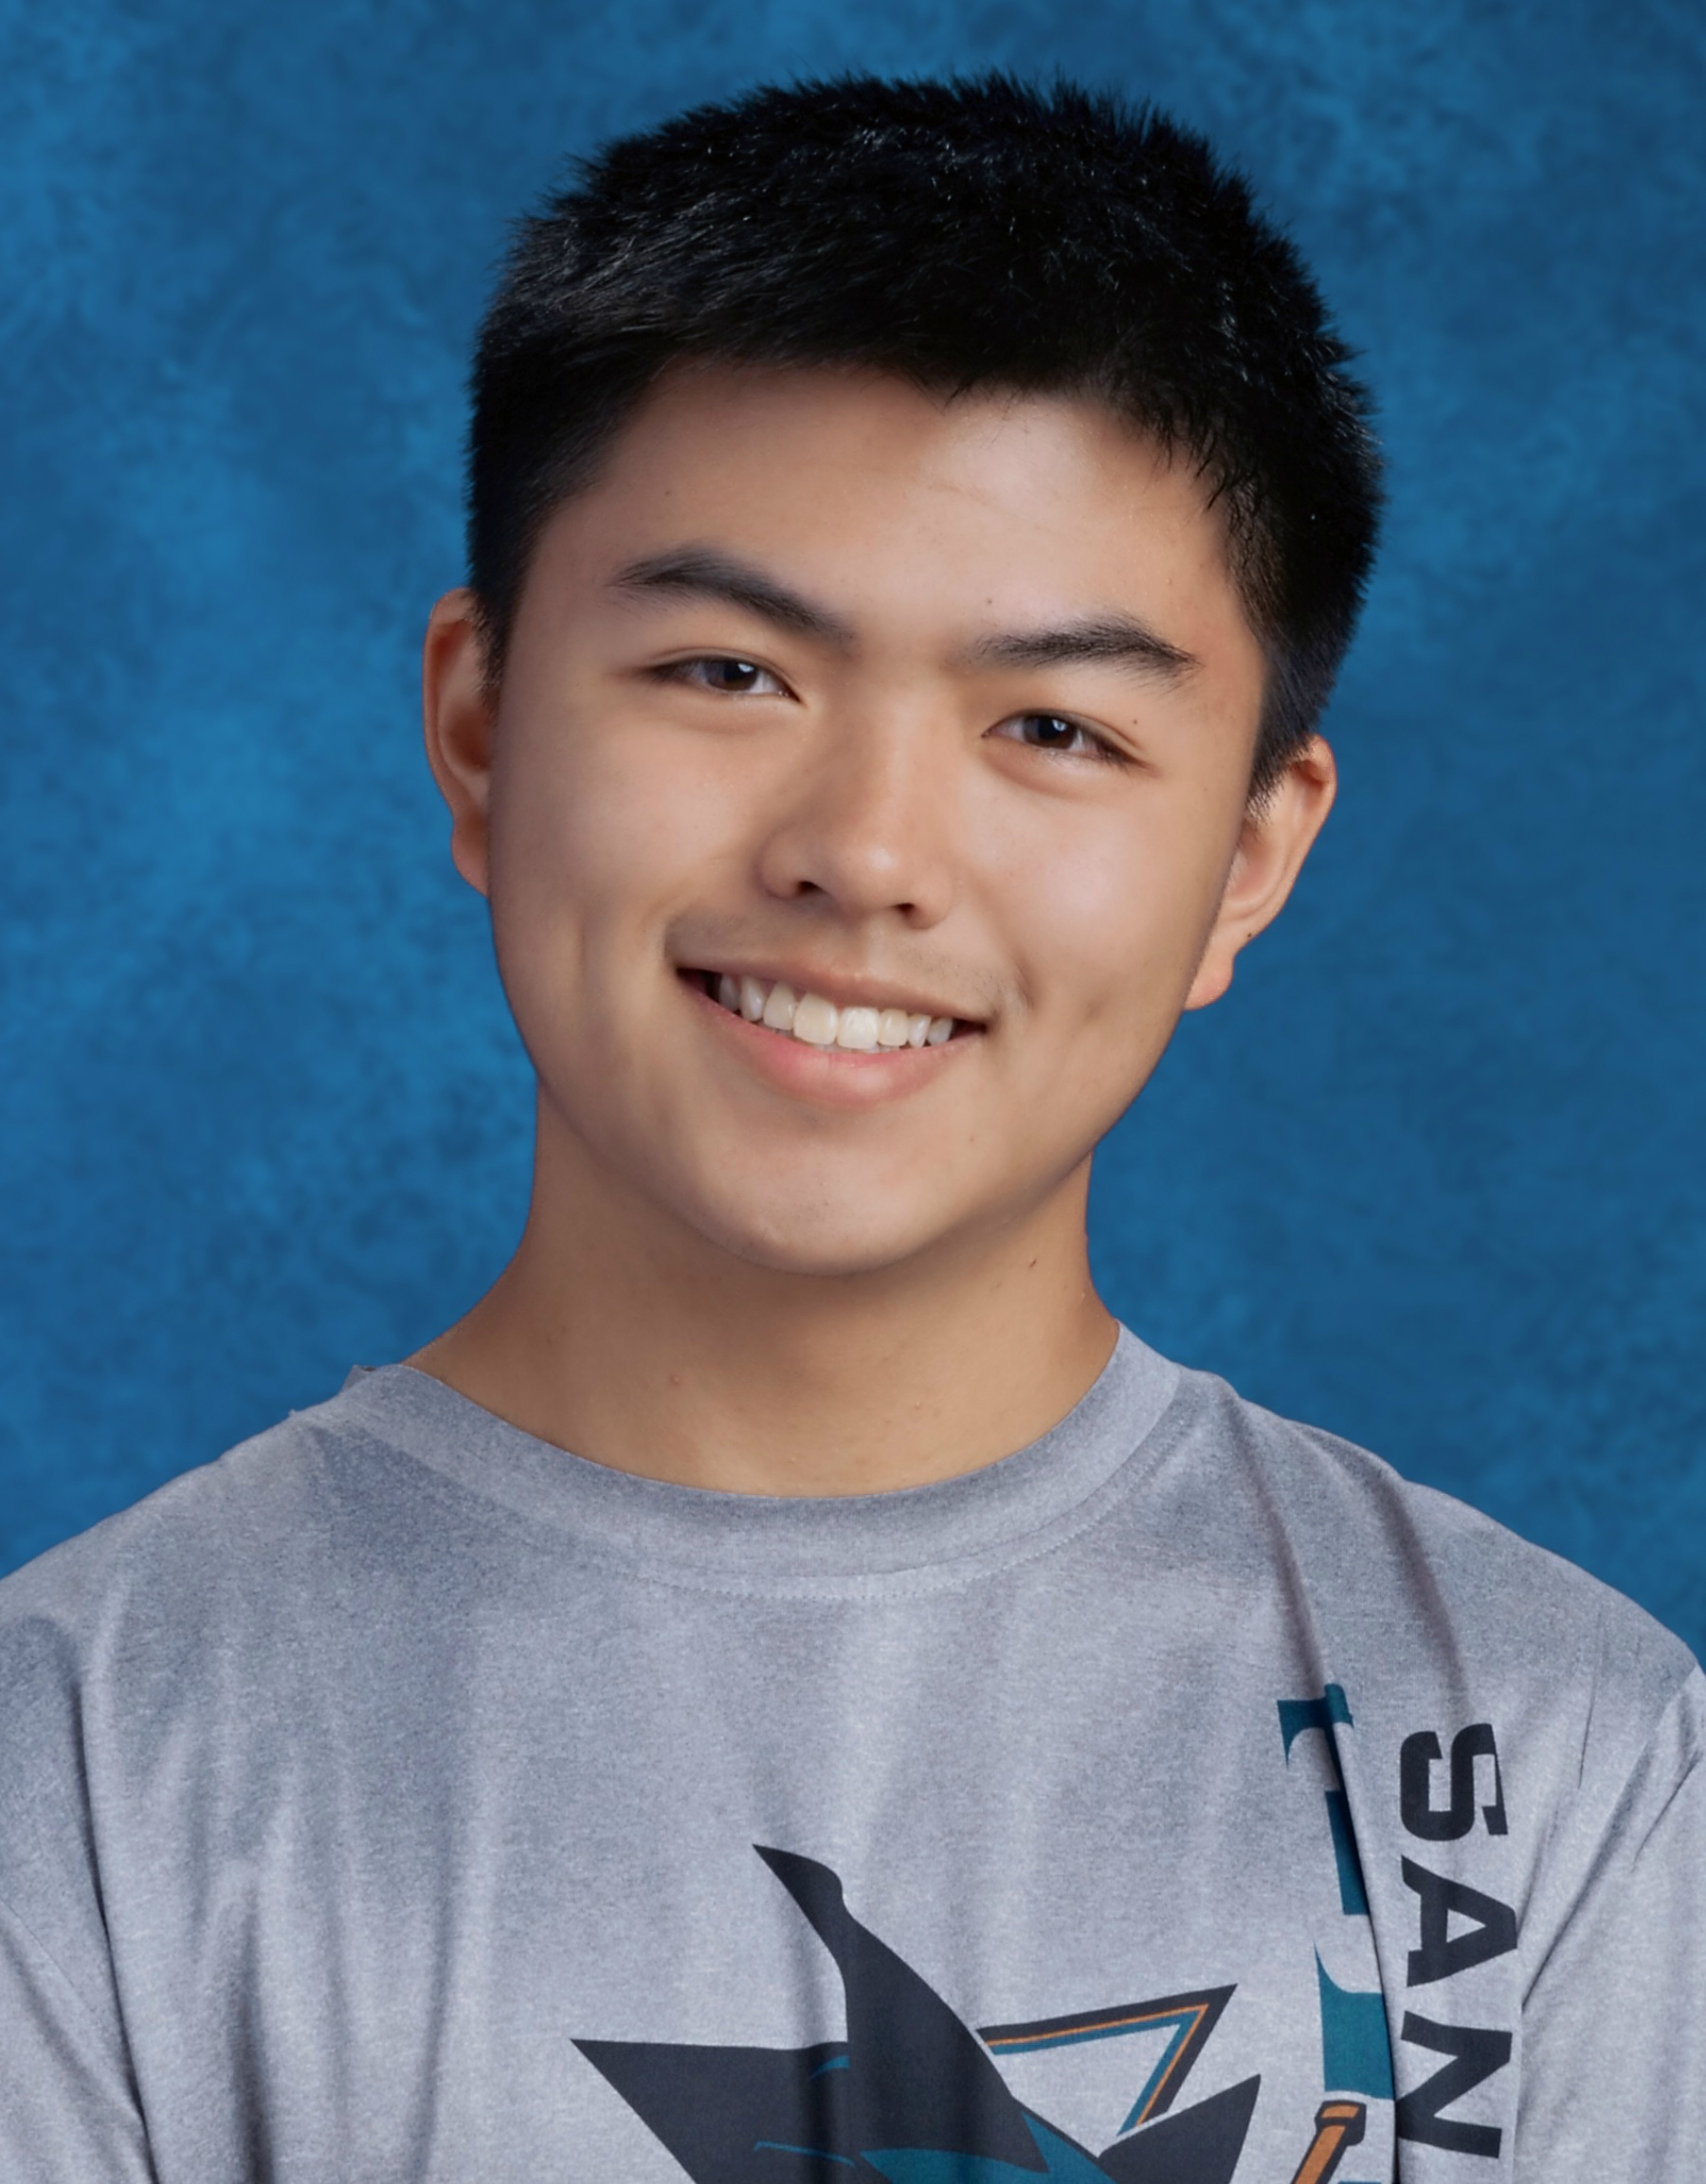 Kevin Gao, rising freshman at UC Berkeley, President of EqOpTech 2018-2019